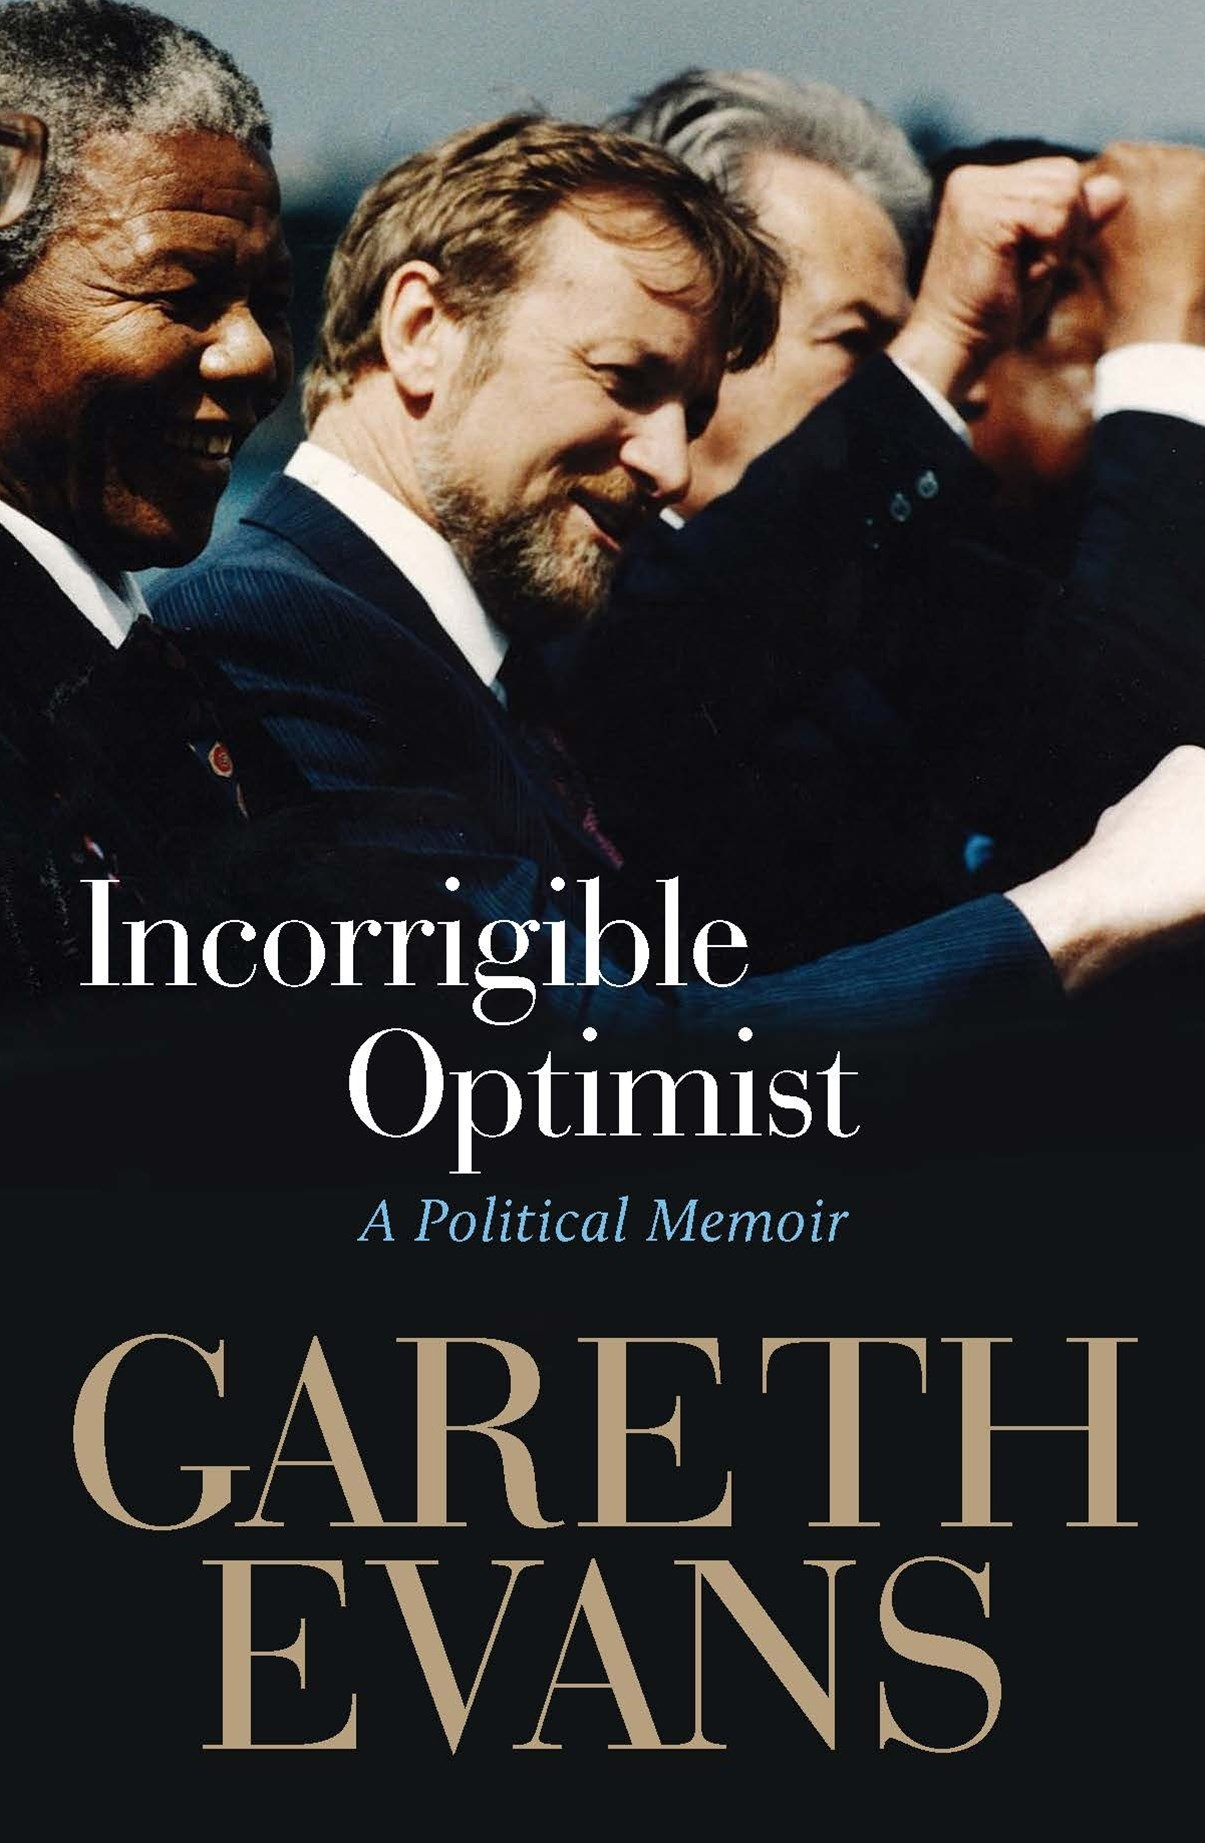 Incorrigible Optimist: A Political Memoir